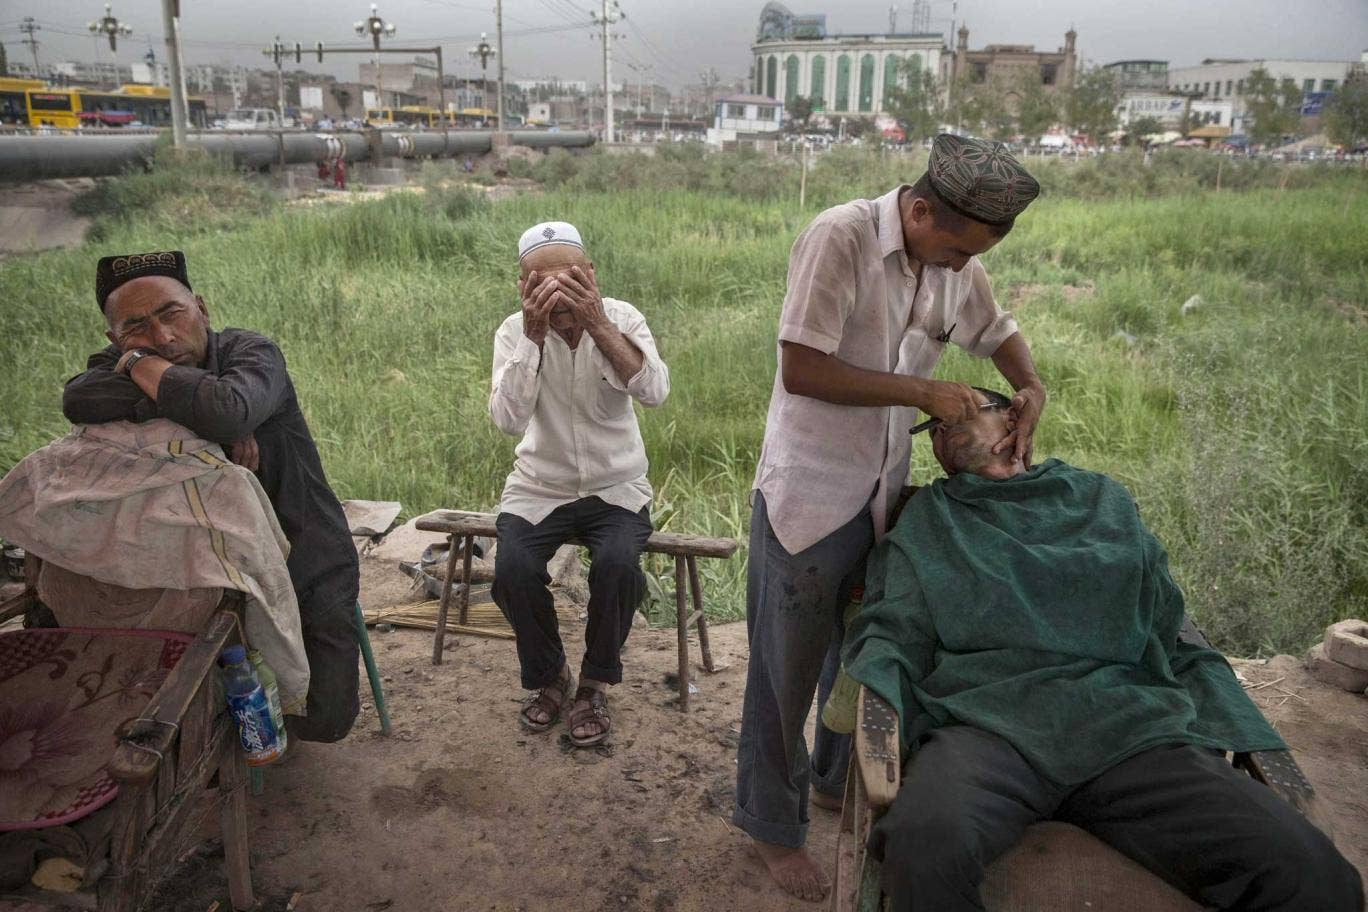 Scraping a living: an Uighur shaves customers at his open air stall in Xinjiang province, the site of recent ethnic unrest